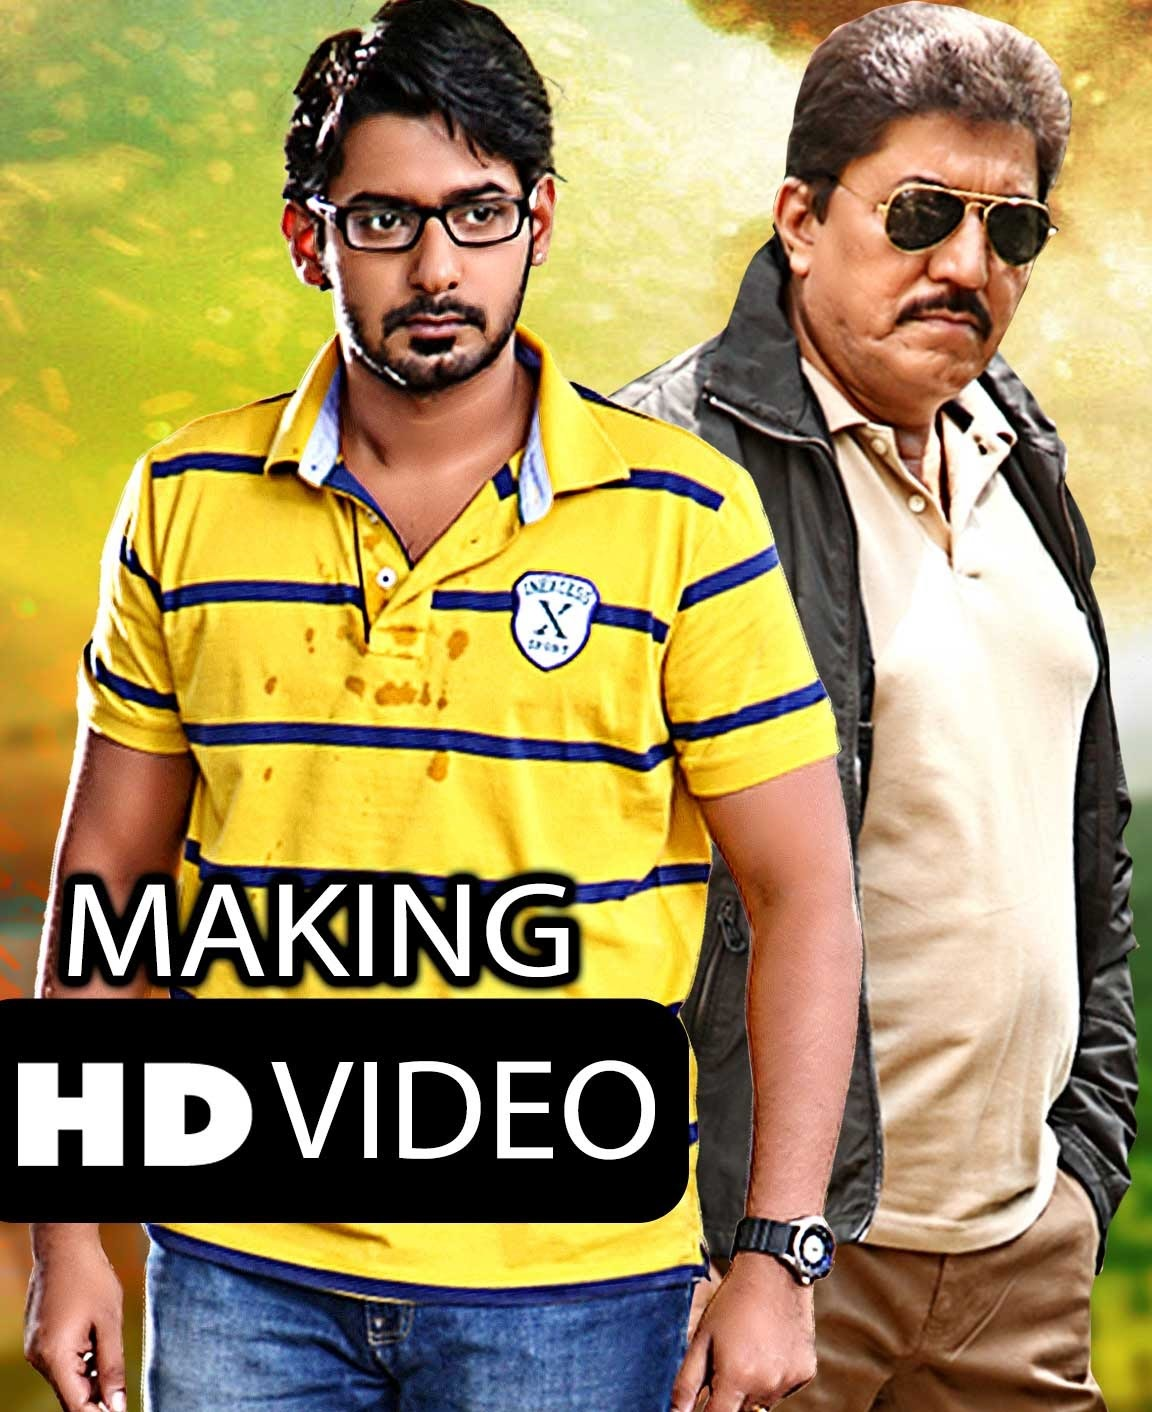 Action Man Arjun (Arjuna) 2018 Hindi Dubbed 720p HDTVRip x264 900MB